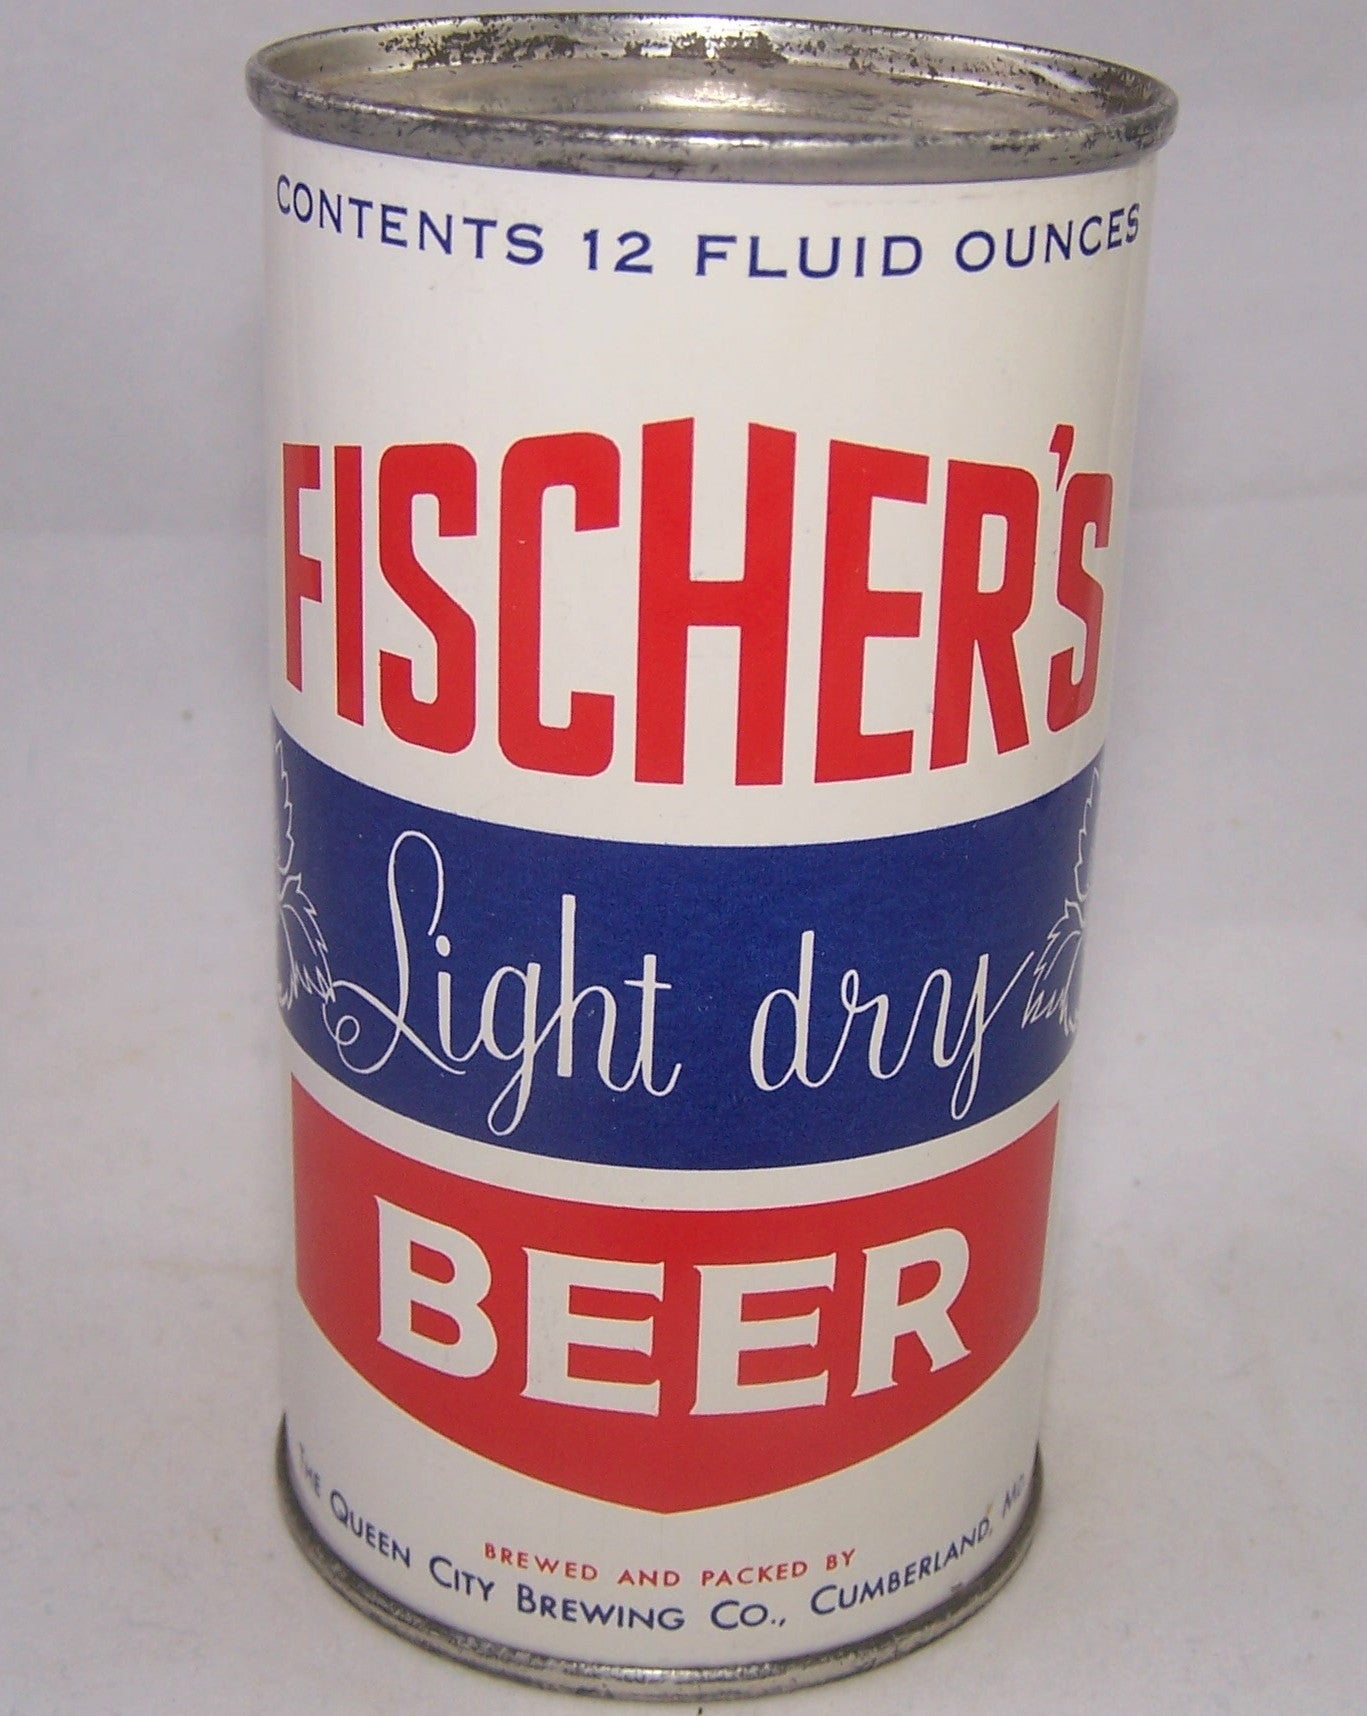 Fischer's Light Dry Beer, USBC 63-27, Grade A1+